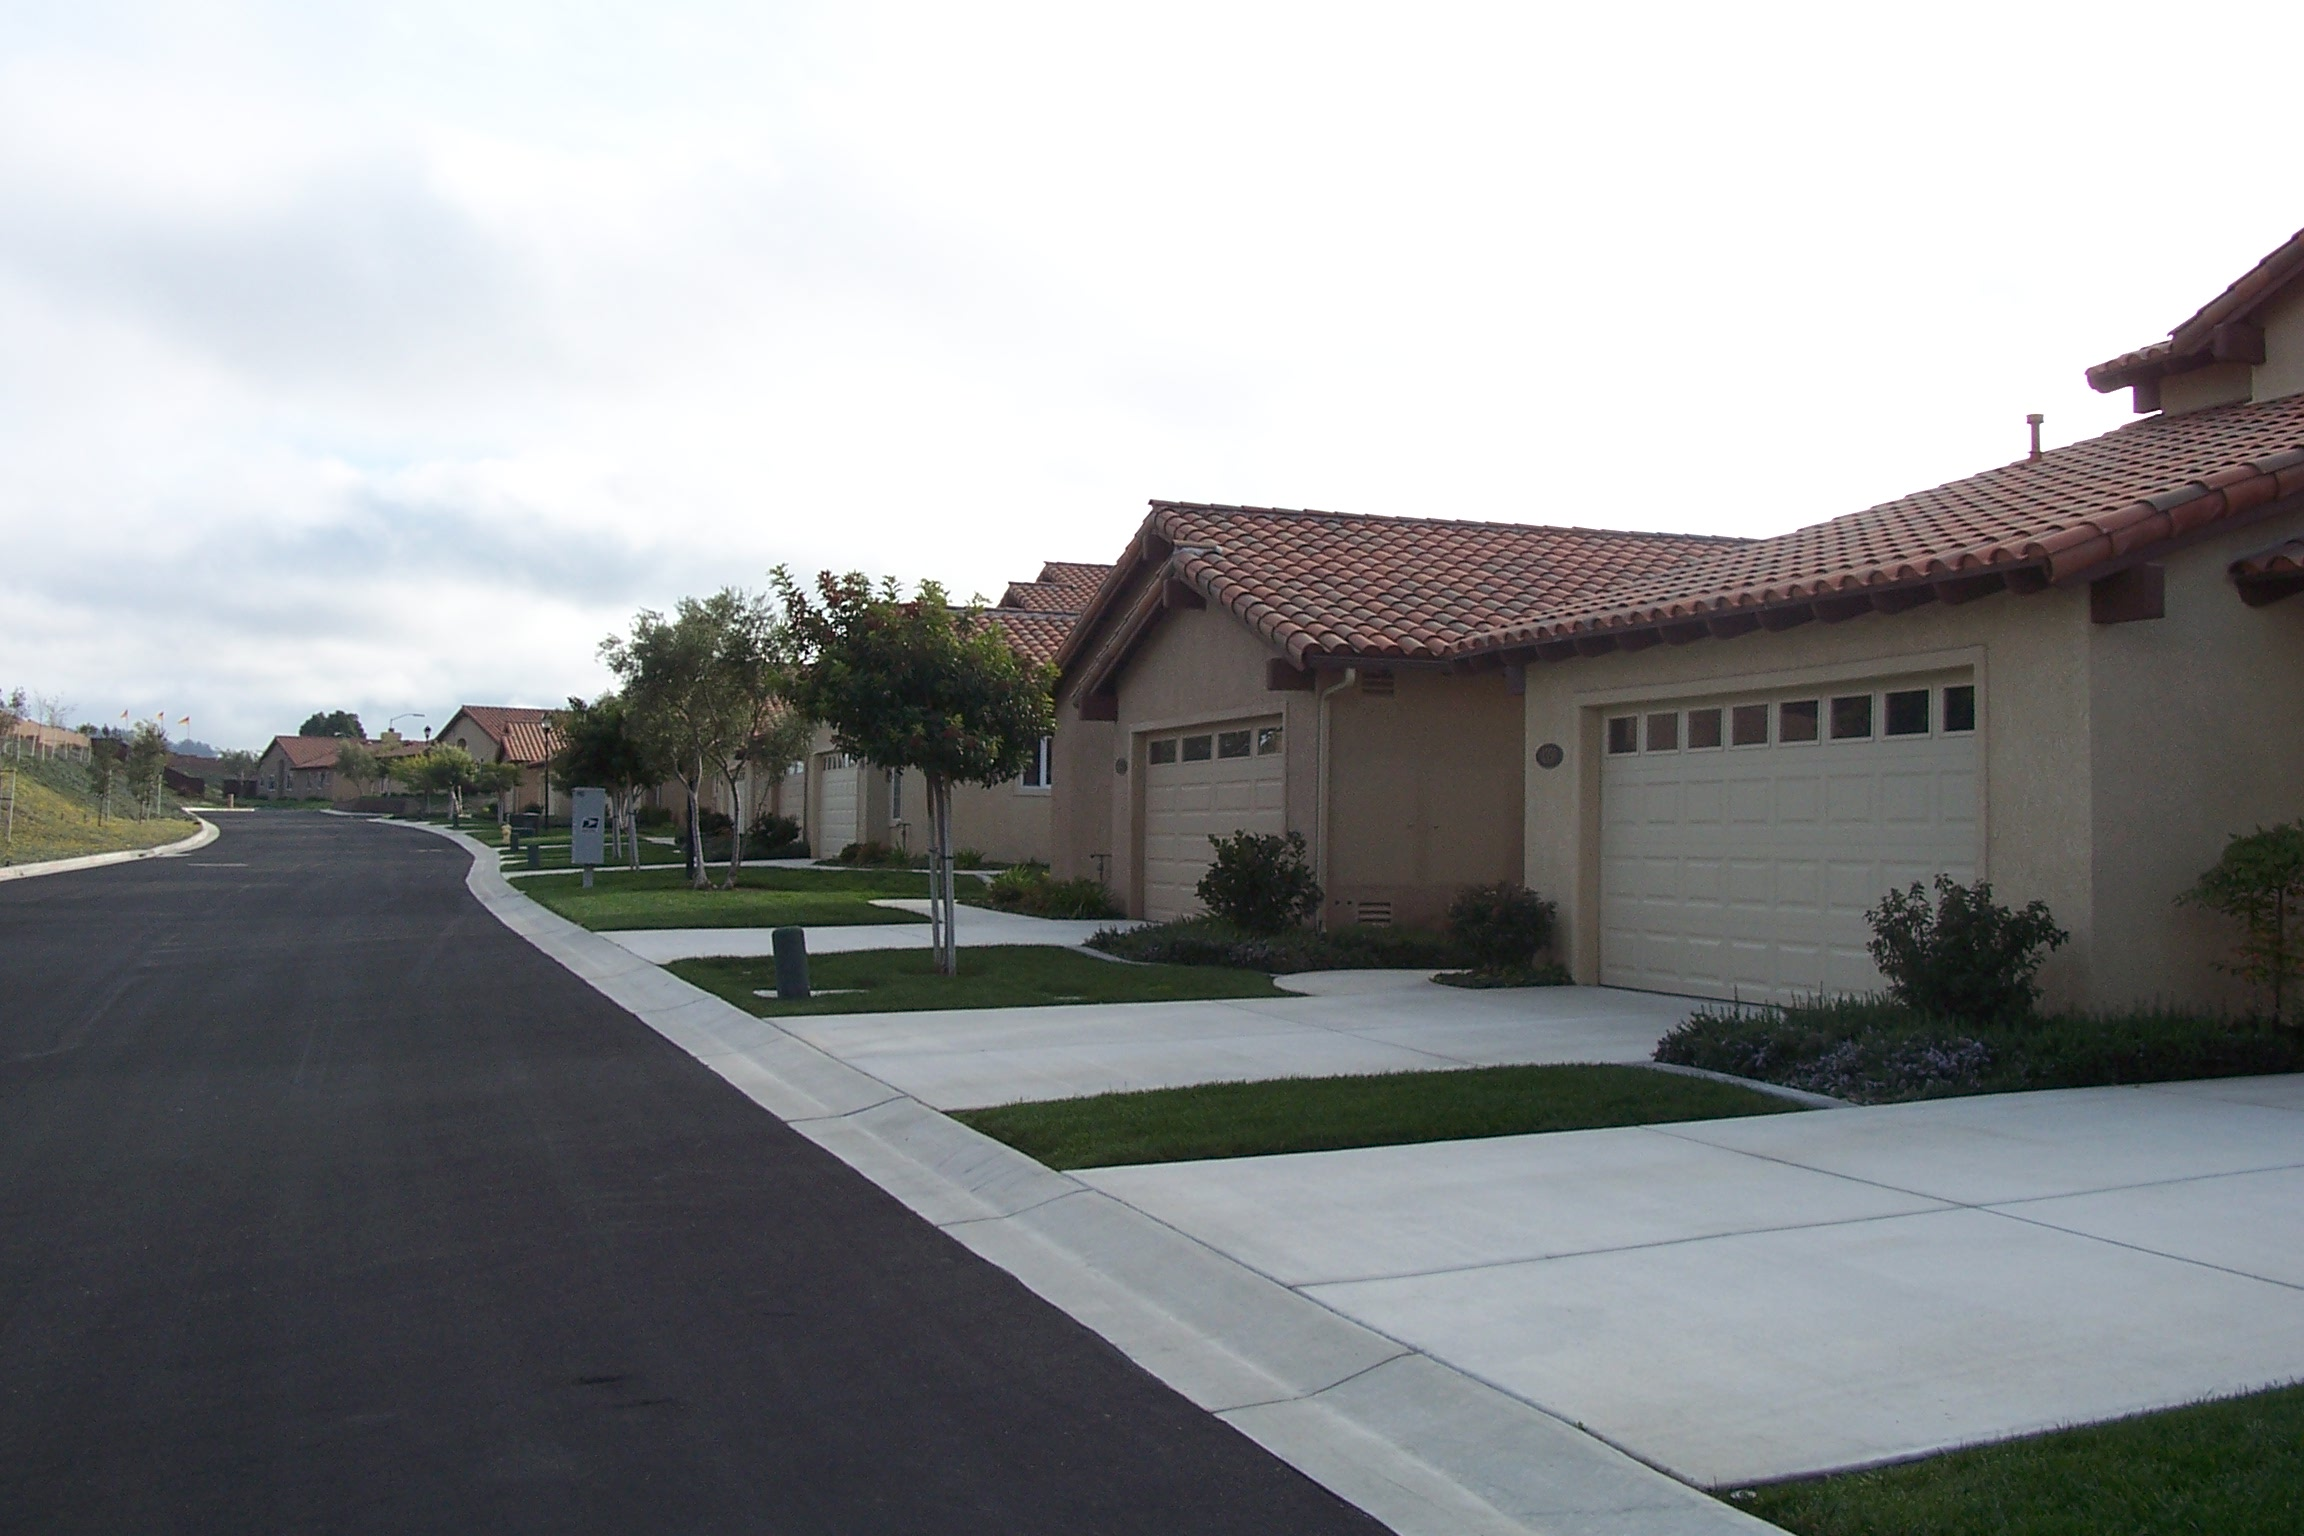 Foxenwood Garden Villa Townhomes in Orcutt, CA